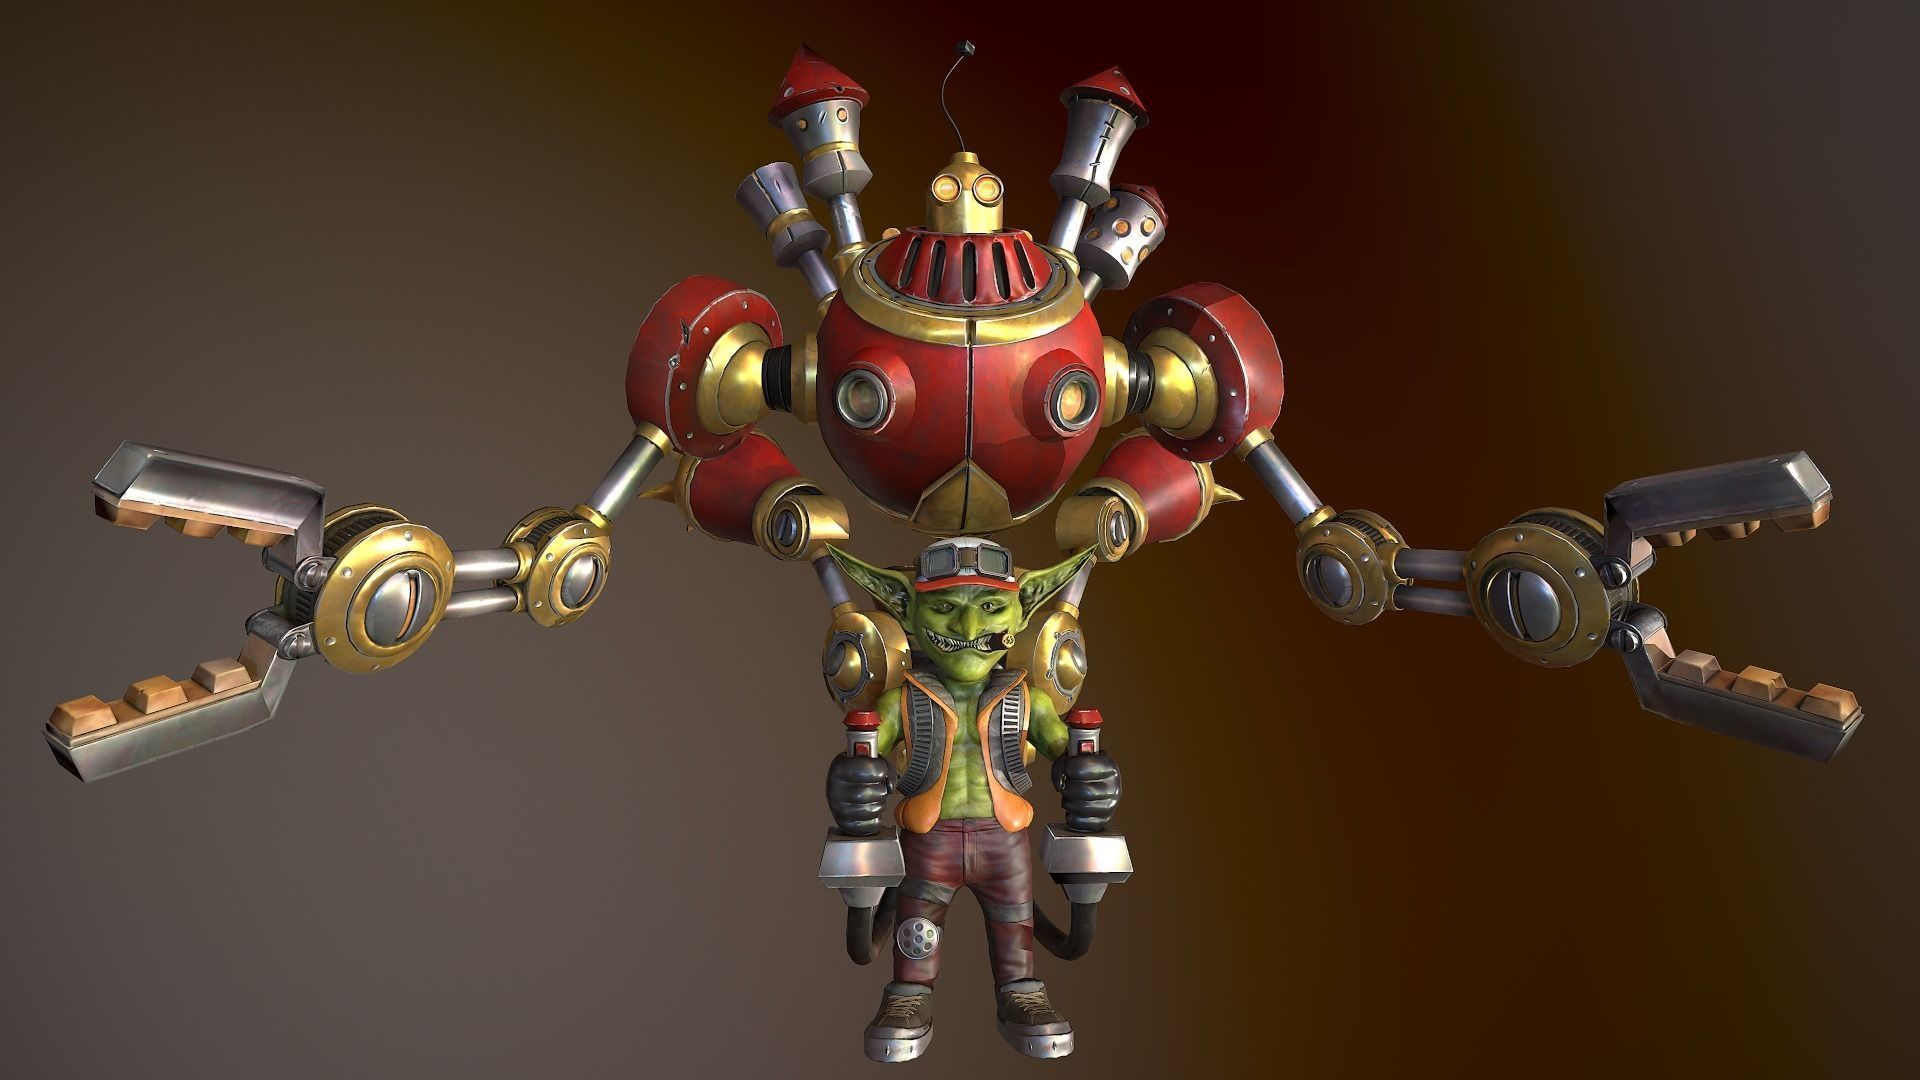 3d Asset Gazlowe Heroes Of The Storm Replica Cgtrader Knoll king on the loose. gazlowe heroes of the storm replica 3d model